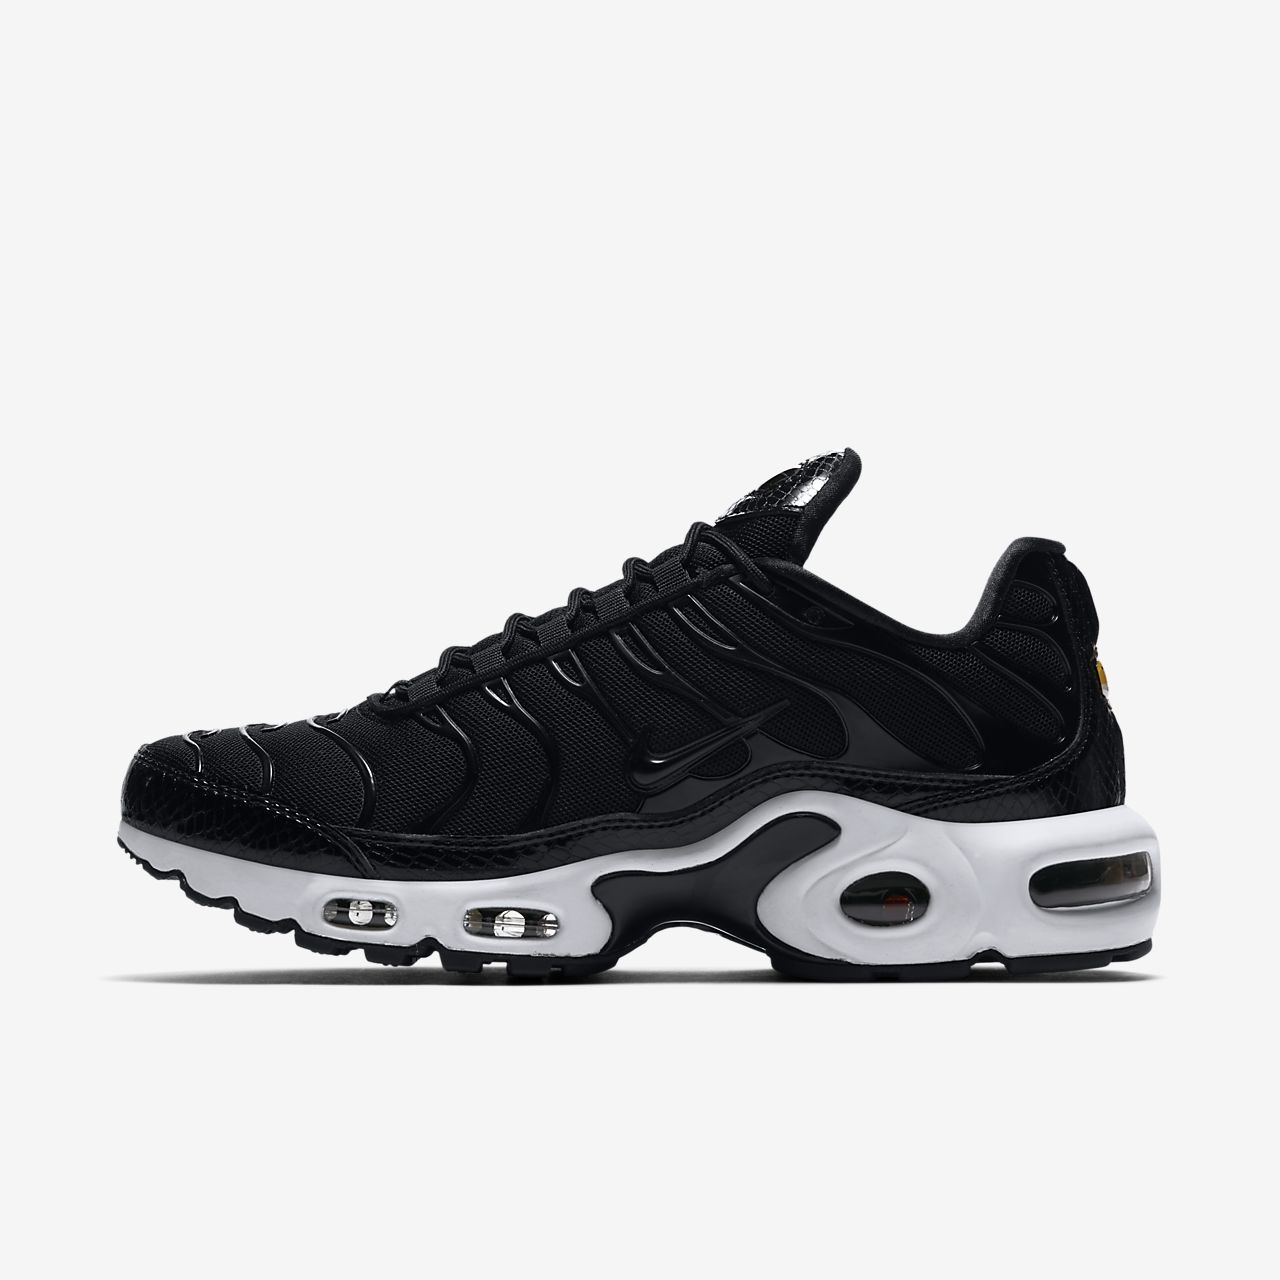 ... Nike Air Max Plus SE Women's Shoe